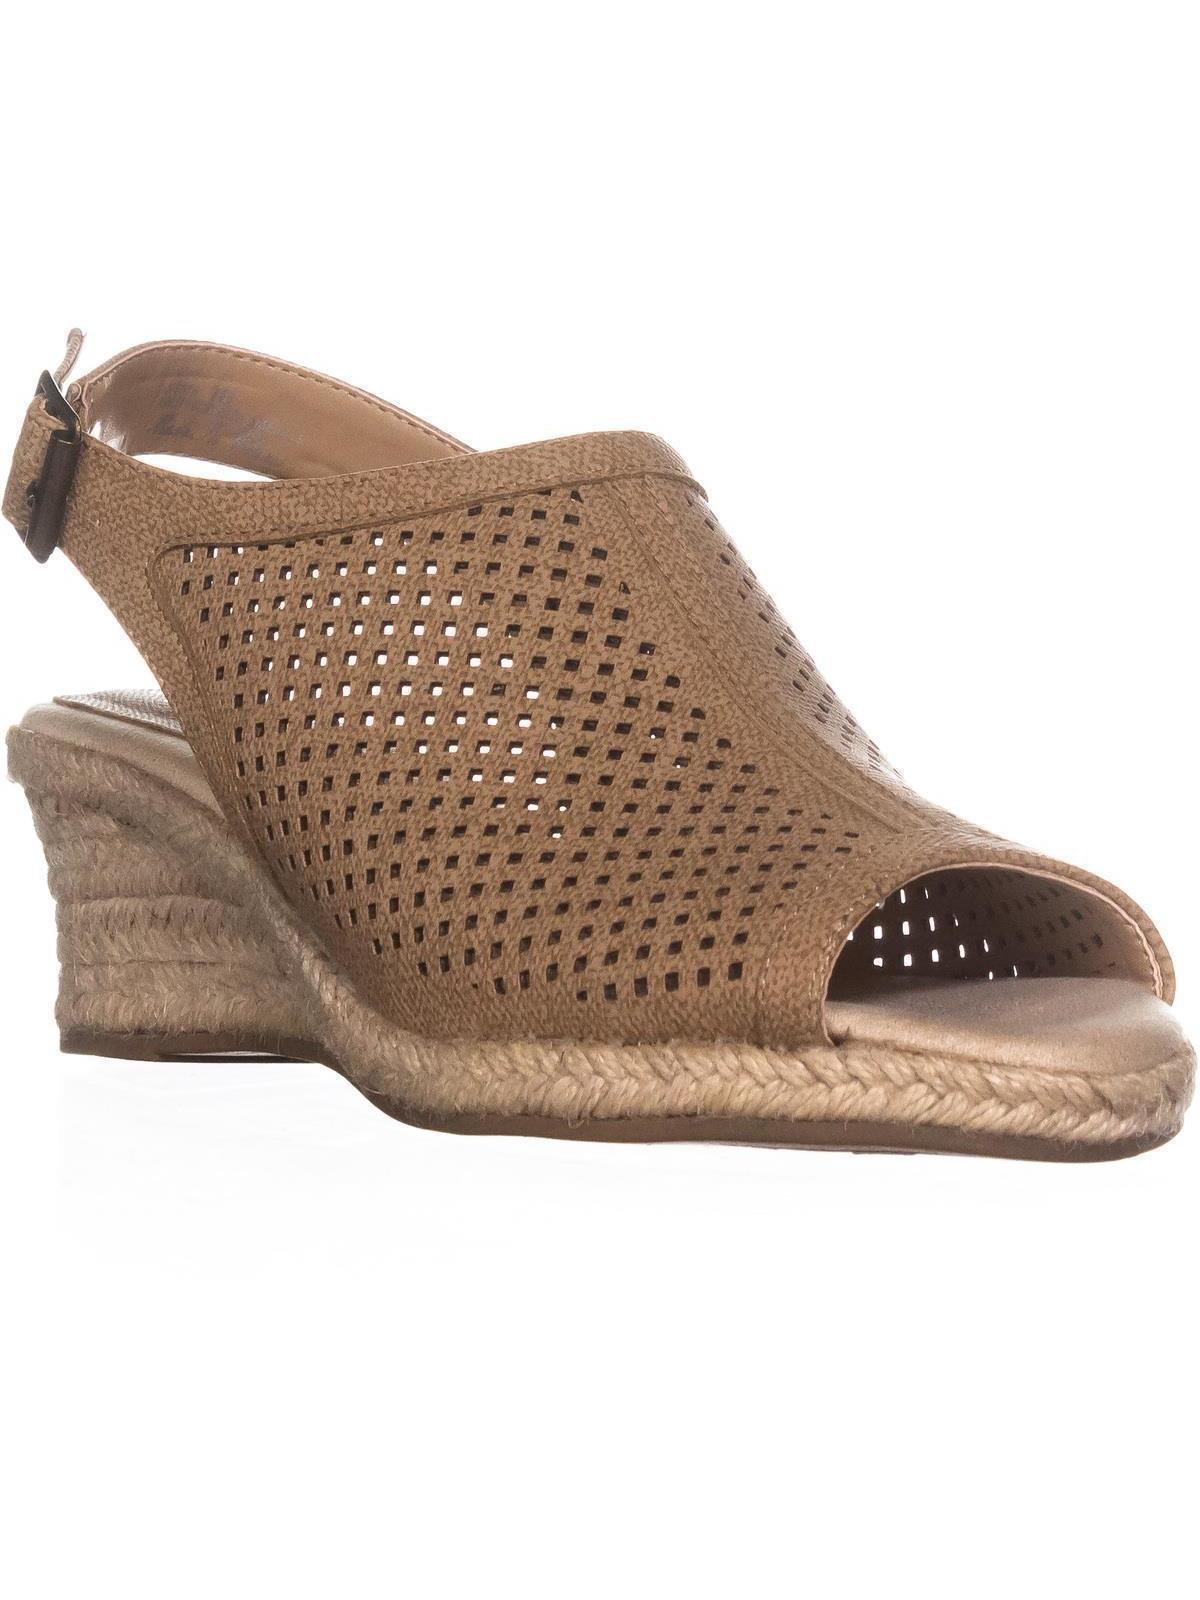 womens easy street stacy espadrilles sandals, tan